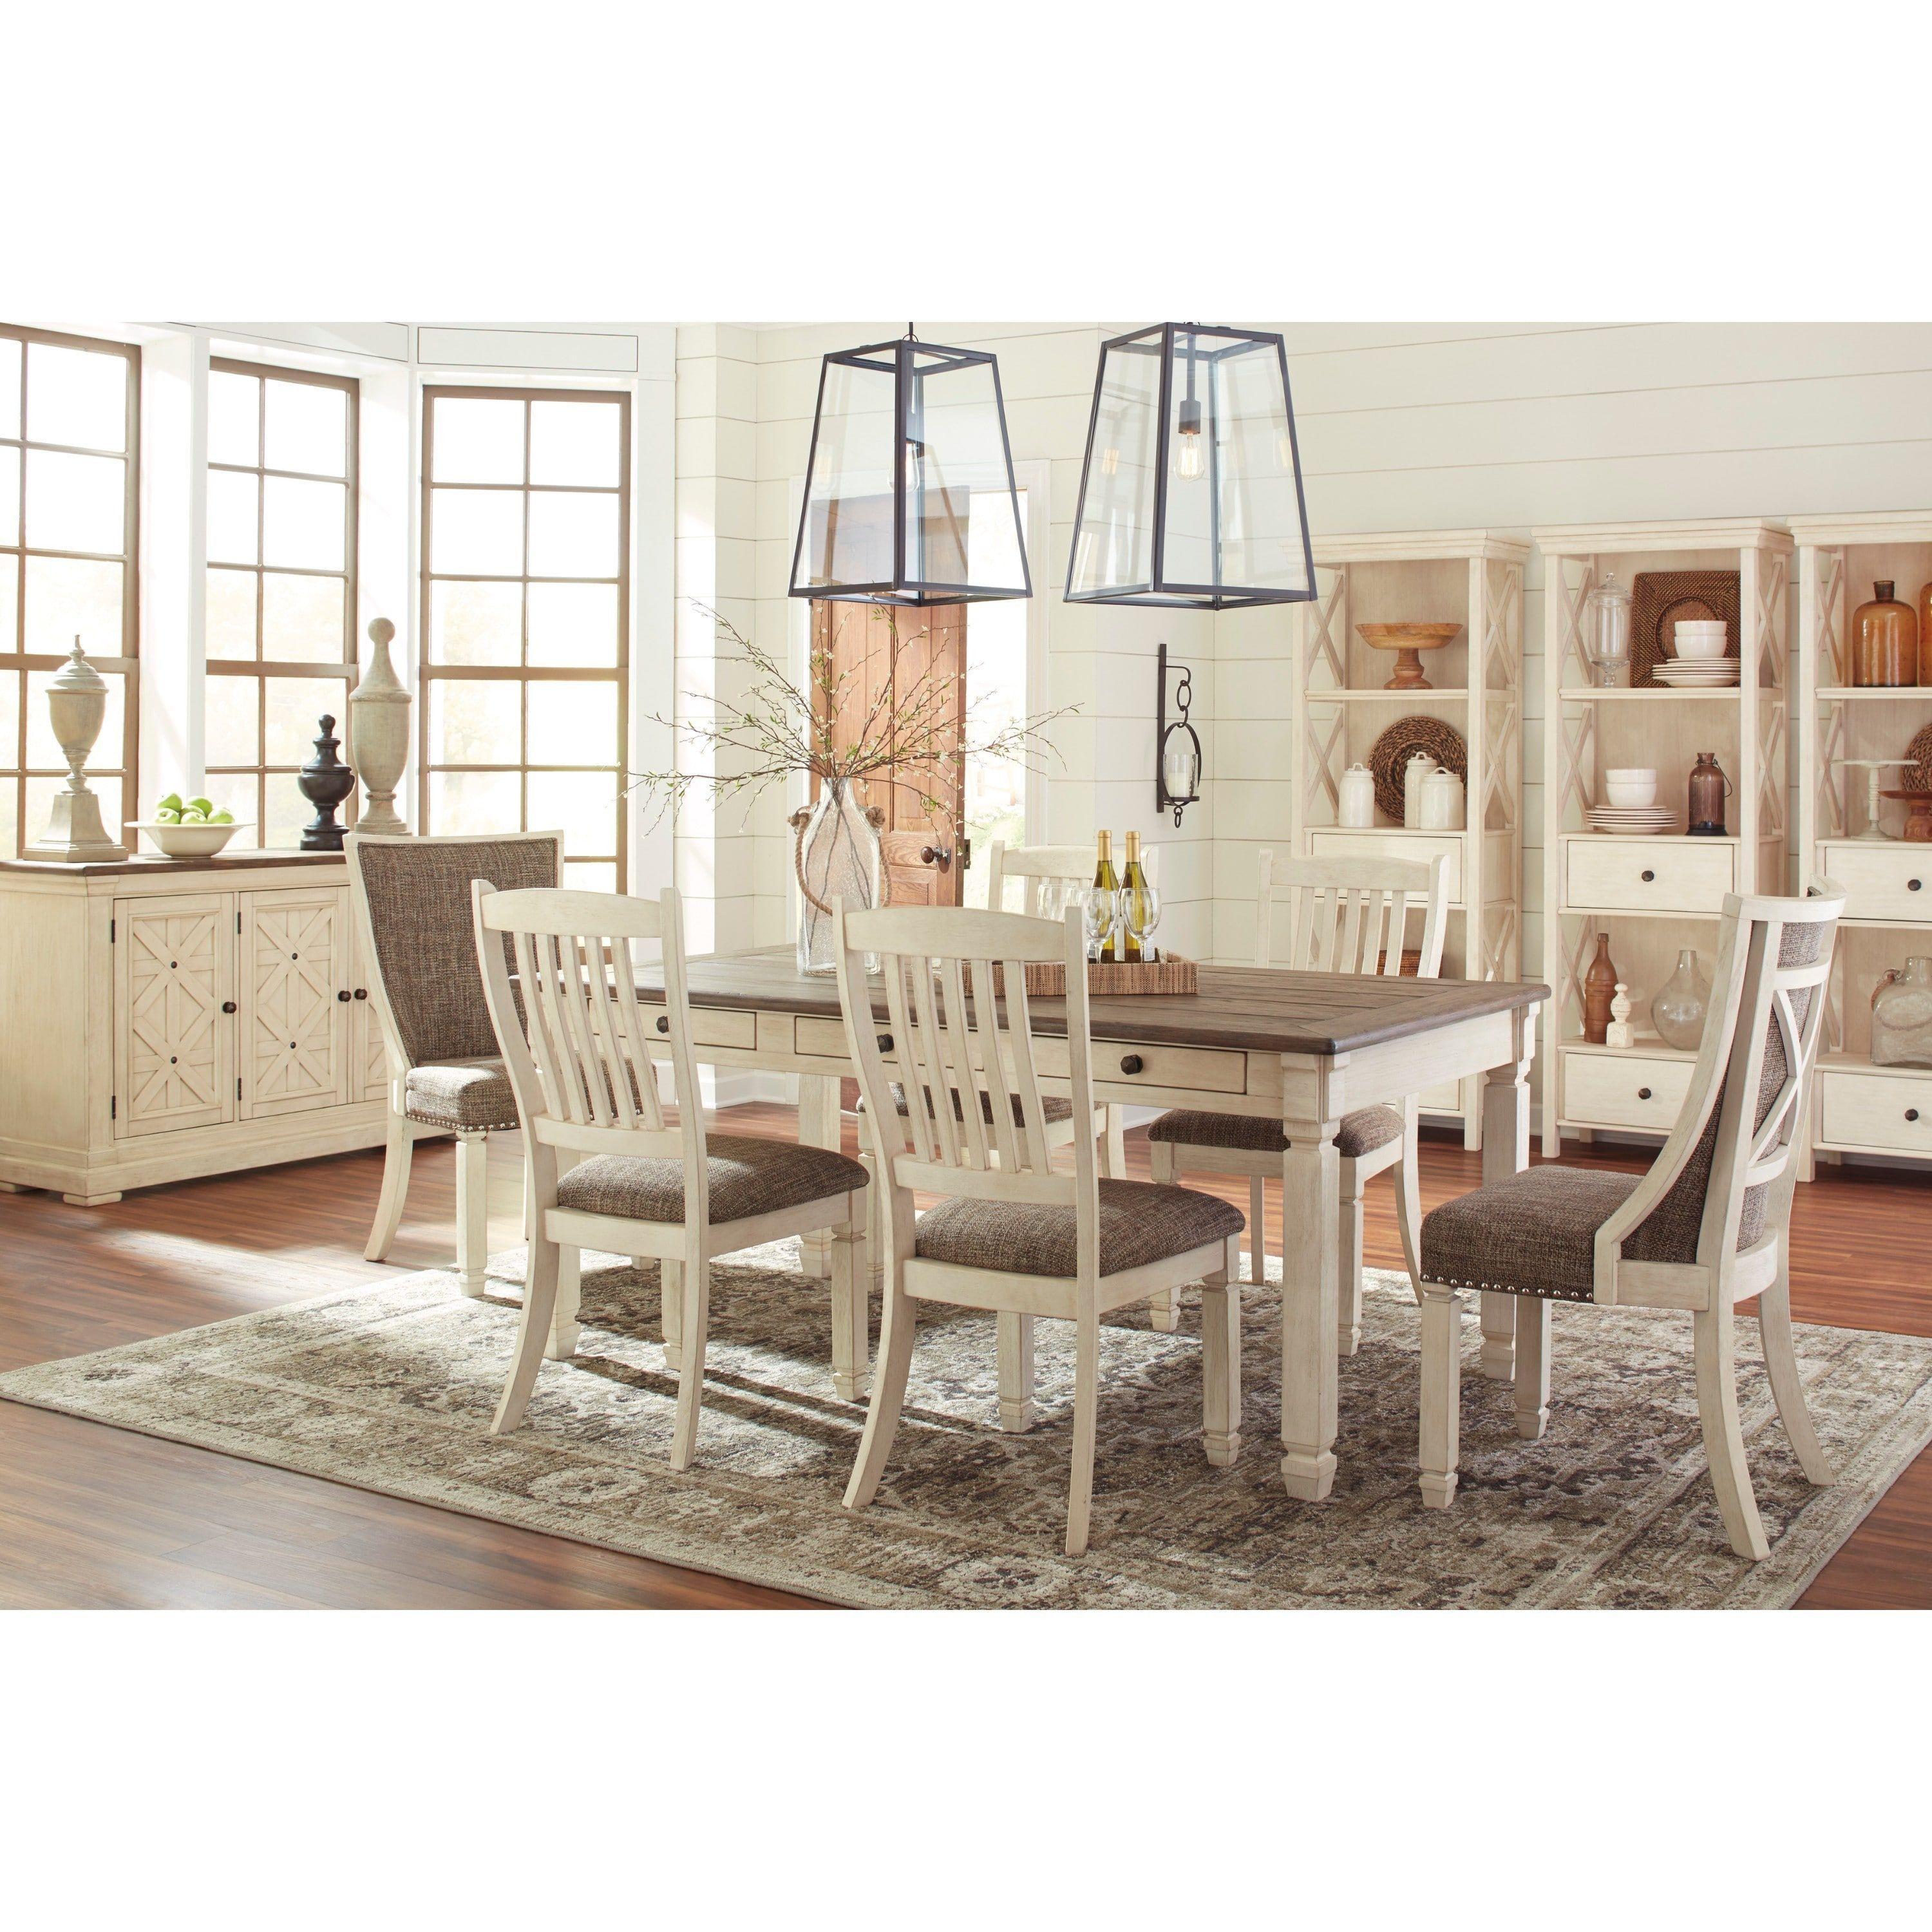 Signature Designashley Bolanburg Twotone Dining Set Dining Alluring Two Toned Dining Room Sets 2018